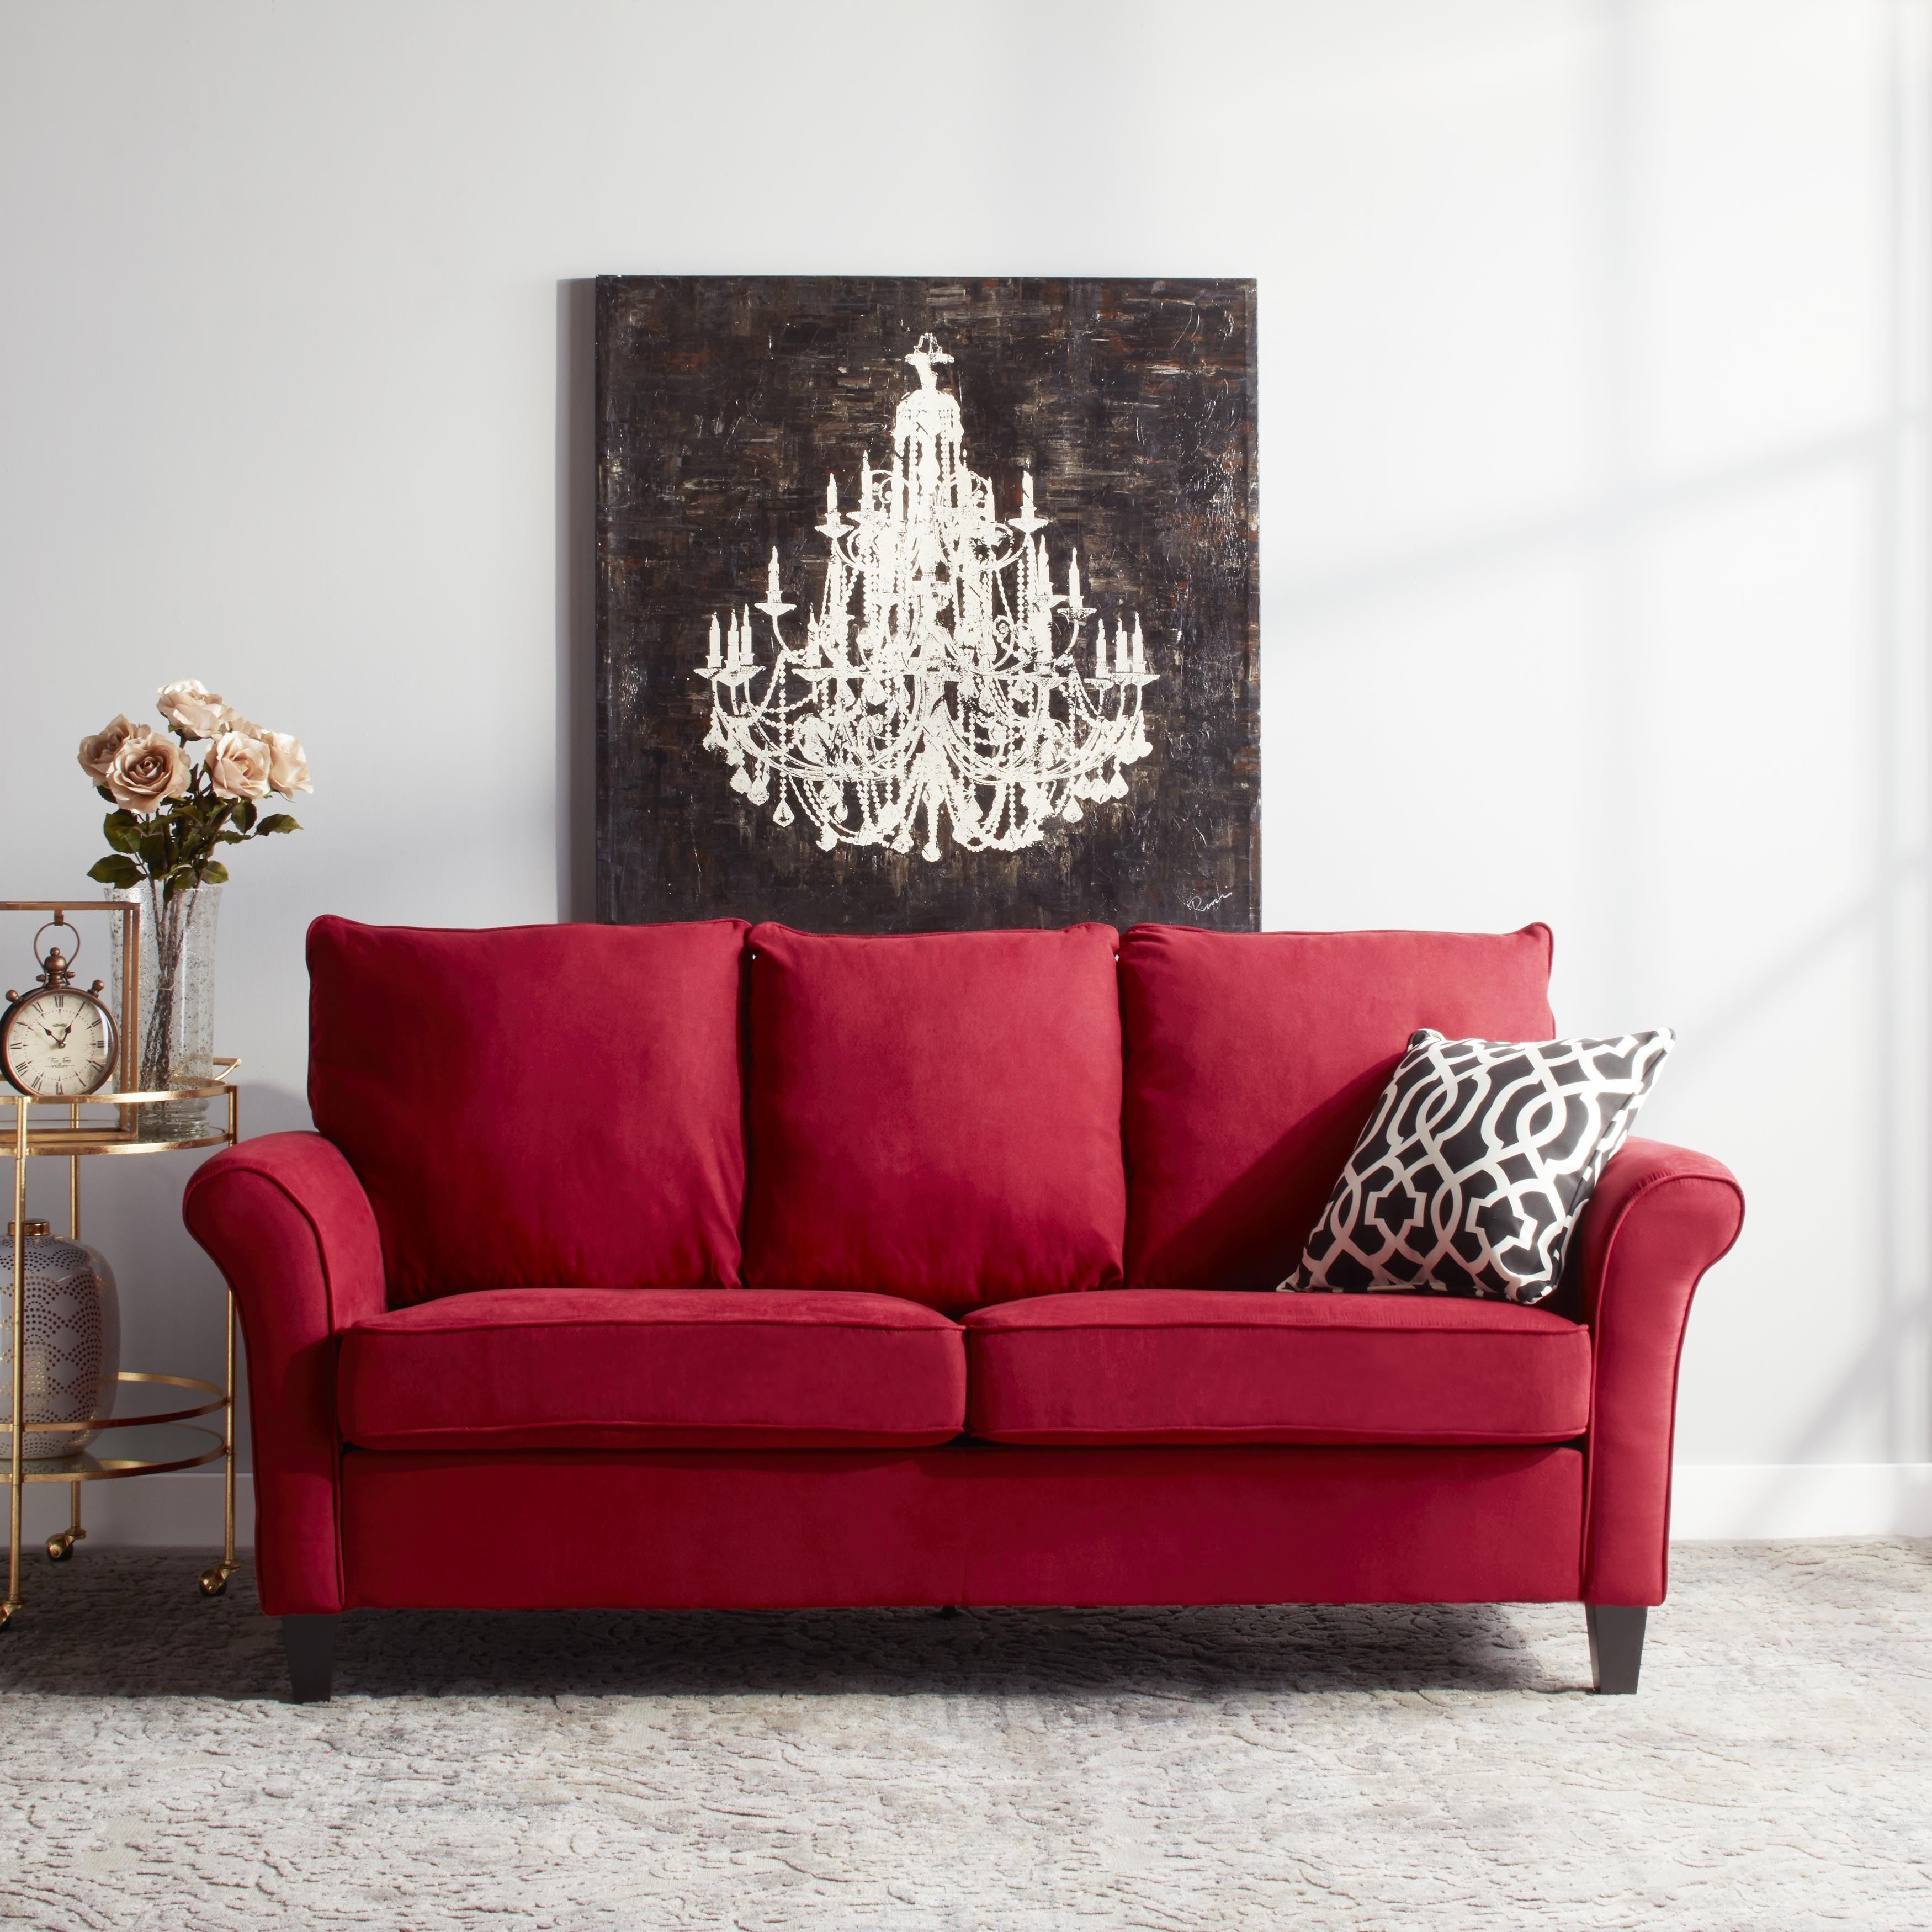 inspirations cleaning microfiber coast couch sofa how full know you sunshinecoast of awesomeow need to a size all photos sunshine awesome bond one clean